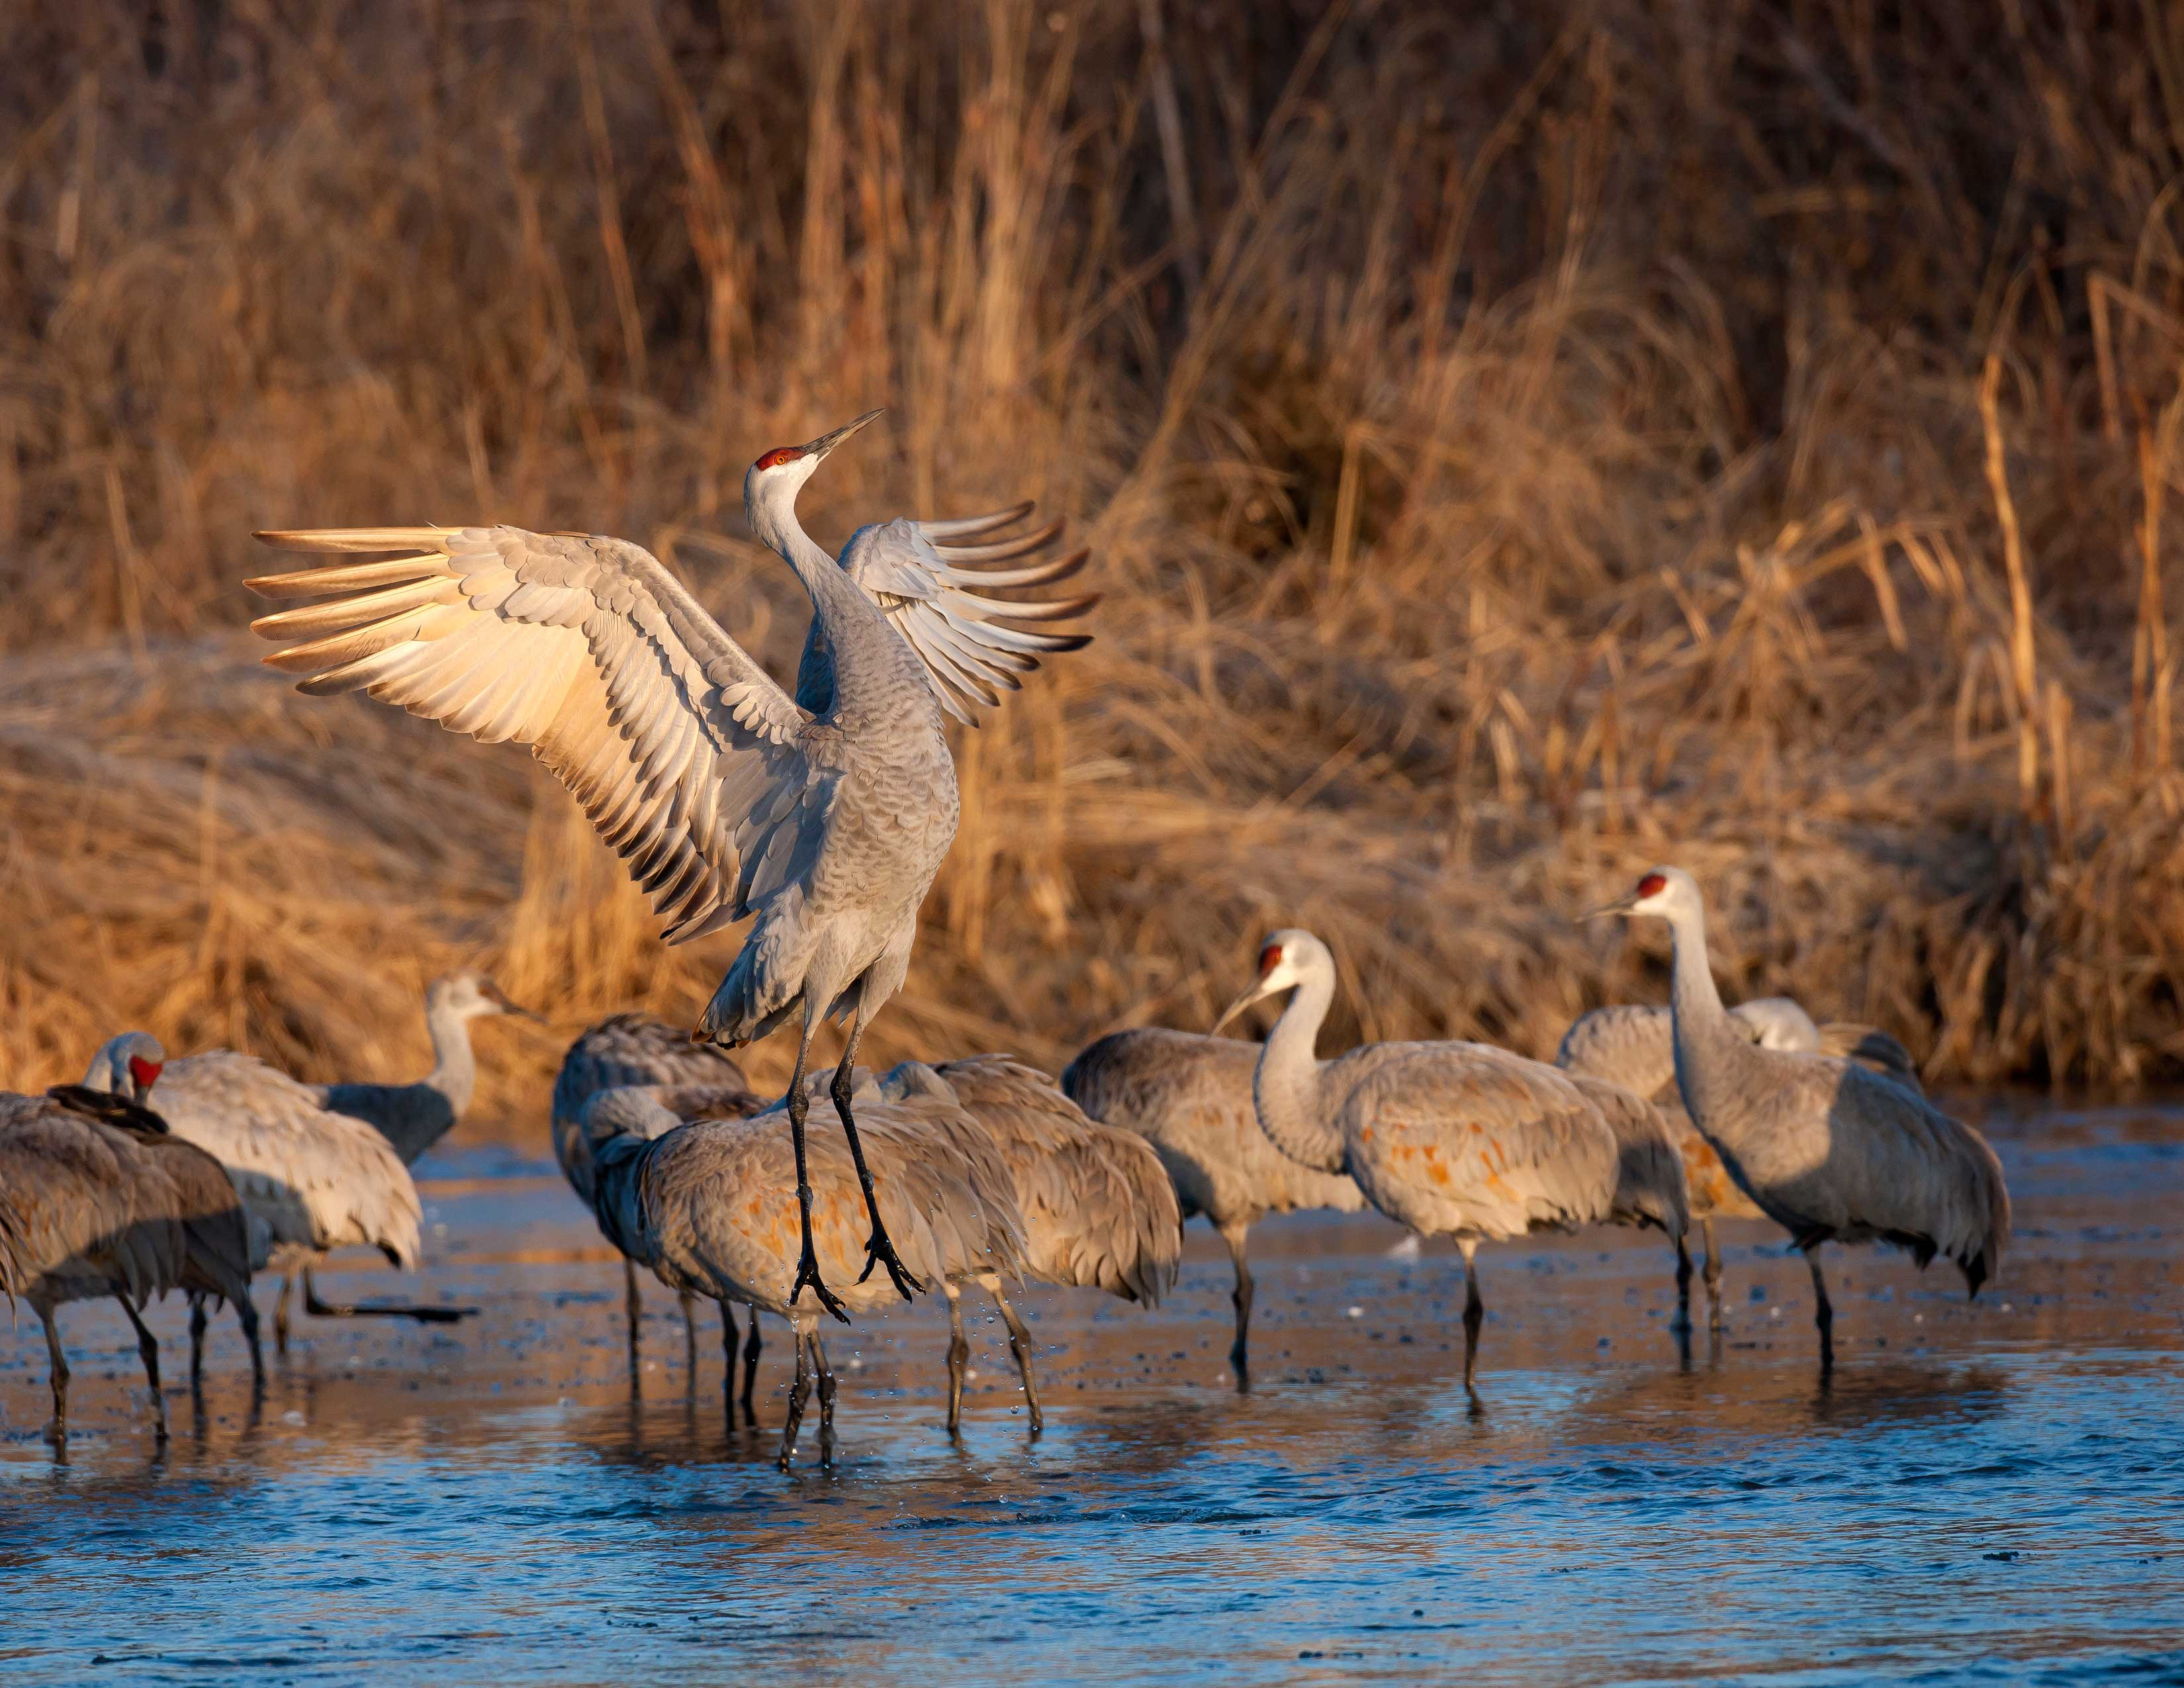 I've traveled far and wide, and coming to Nebraska, and seeing and hearing the cranes always restores my soul.